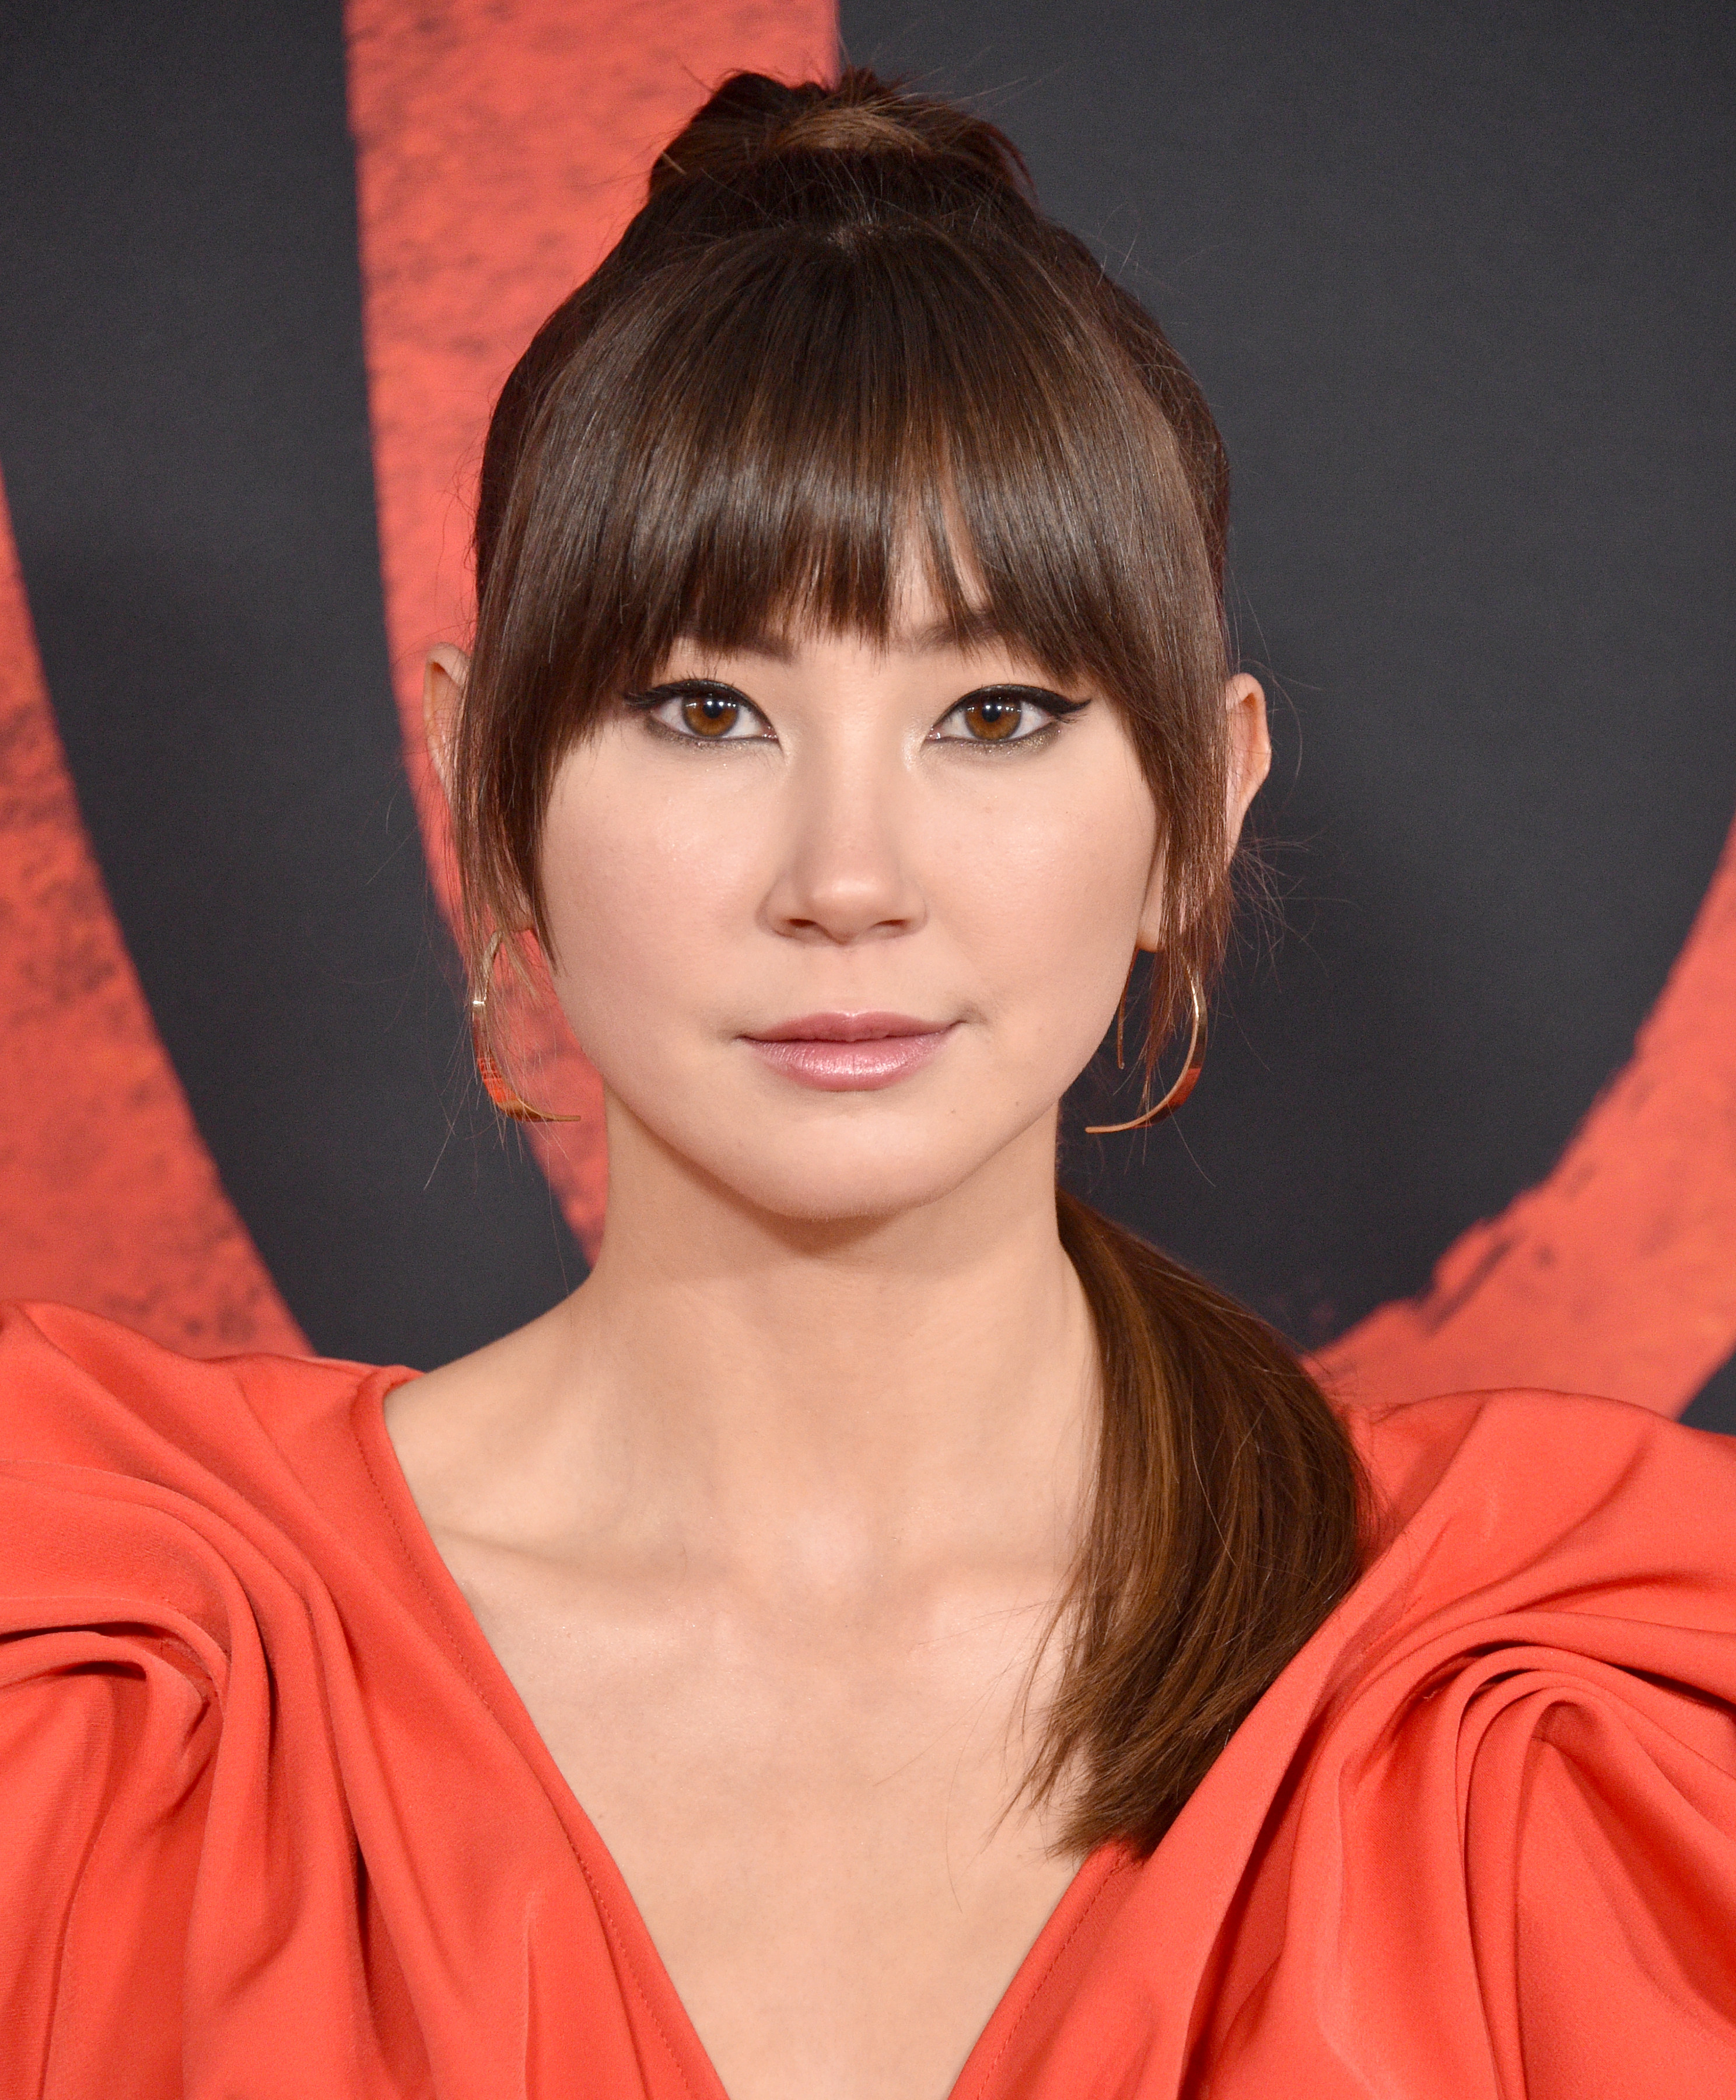 Kimiko Glenn wears a deep-cut, coral dress with ruched-shoulder, and her hair in a pony tail while her bangs frame her face